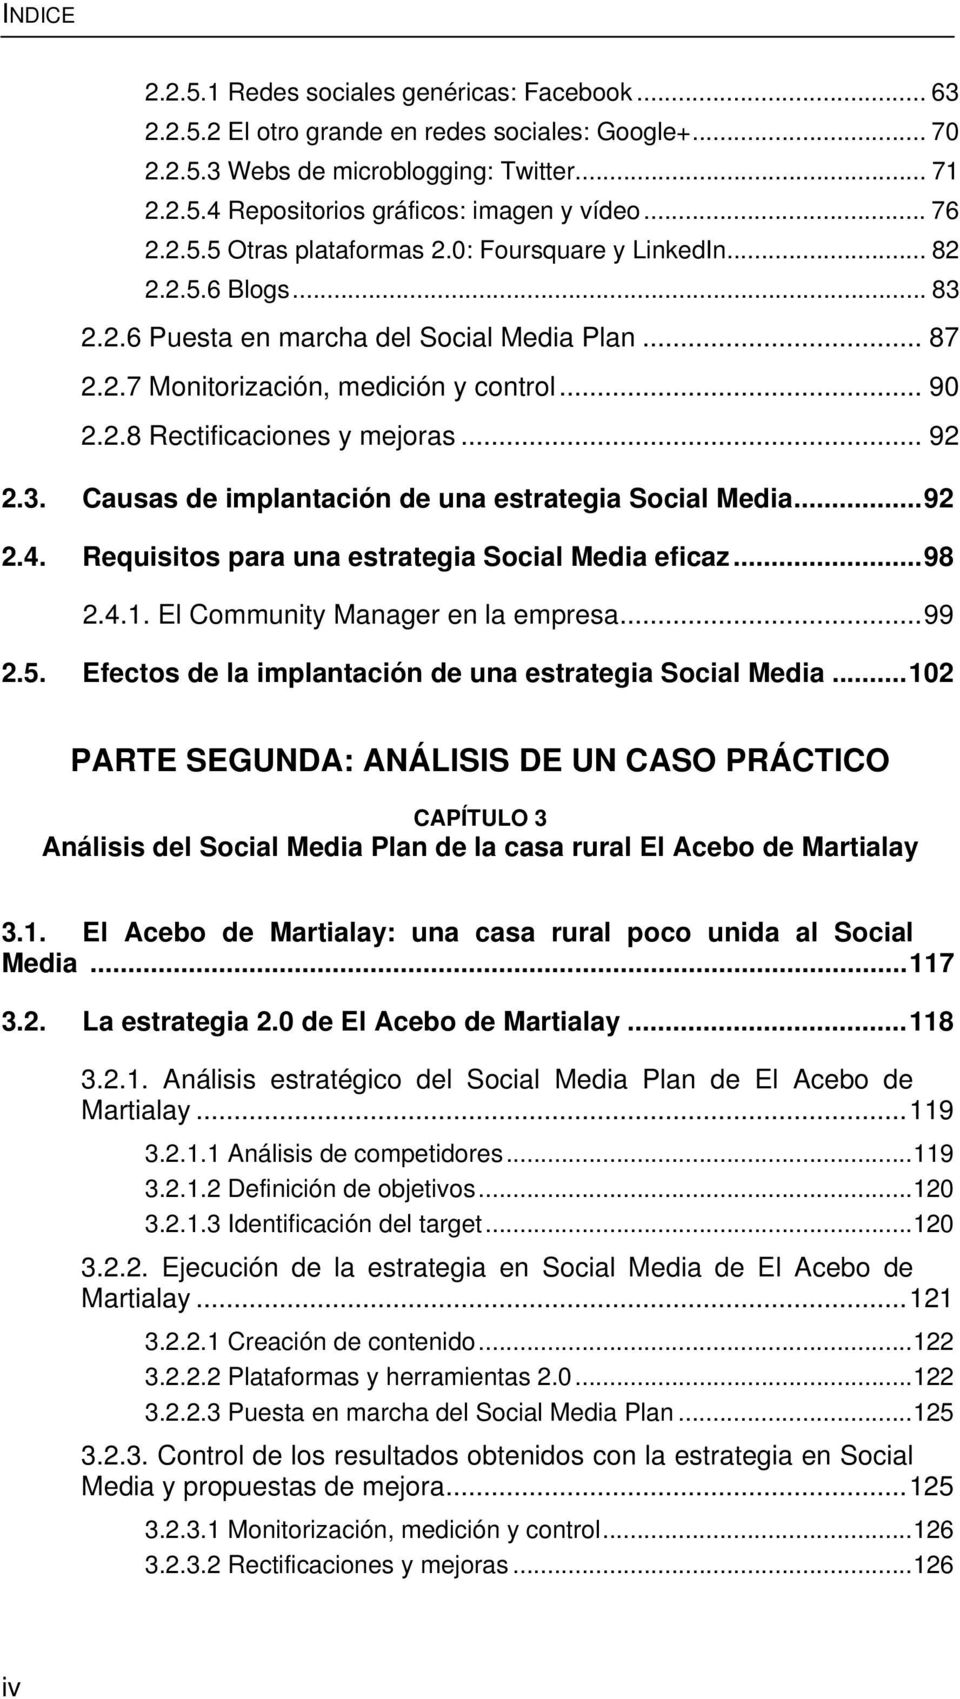 .. 92 2.3. Causas de implantación de una estrategia Social Media... 92 2.4. Requisitos para una estrategia Social Media eficaz... 98 2.4.1. El Community Manager en la empresa... 99 2.5.